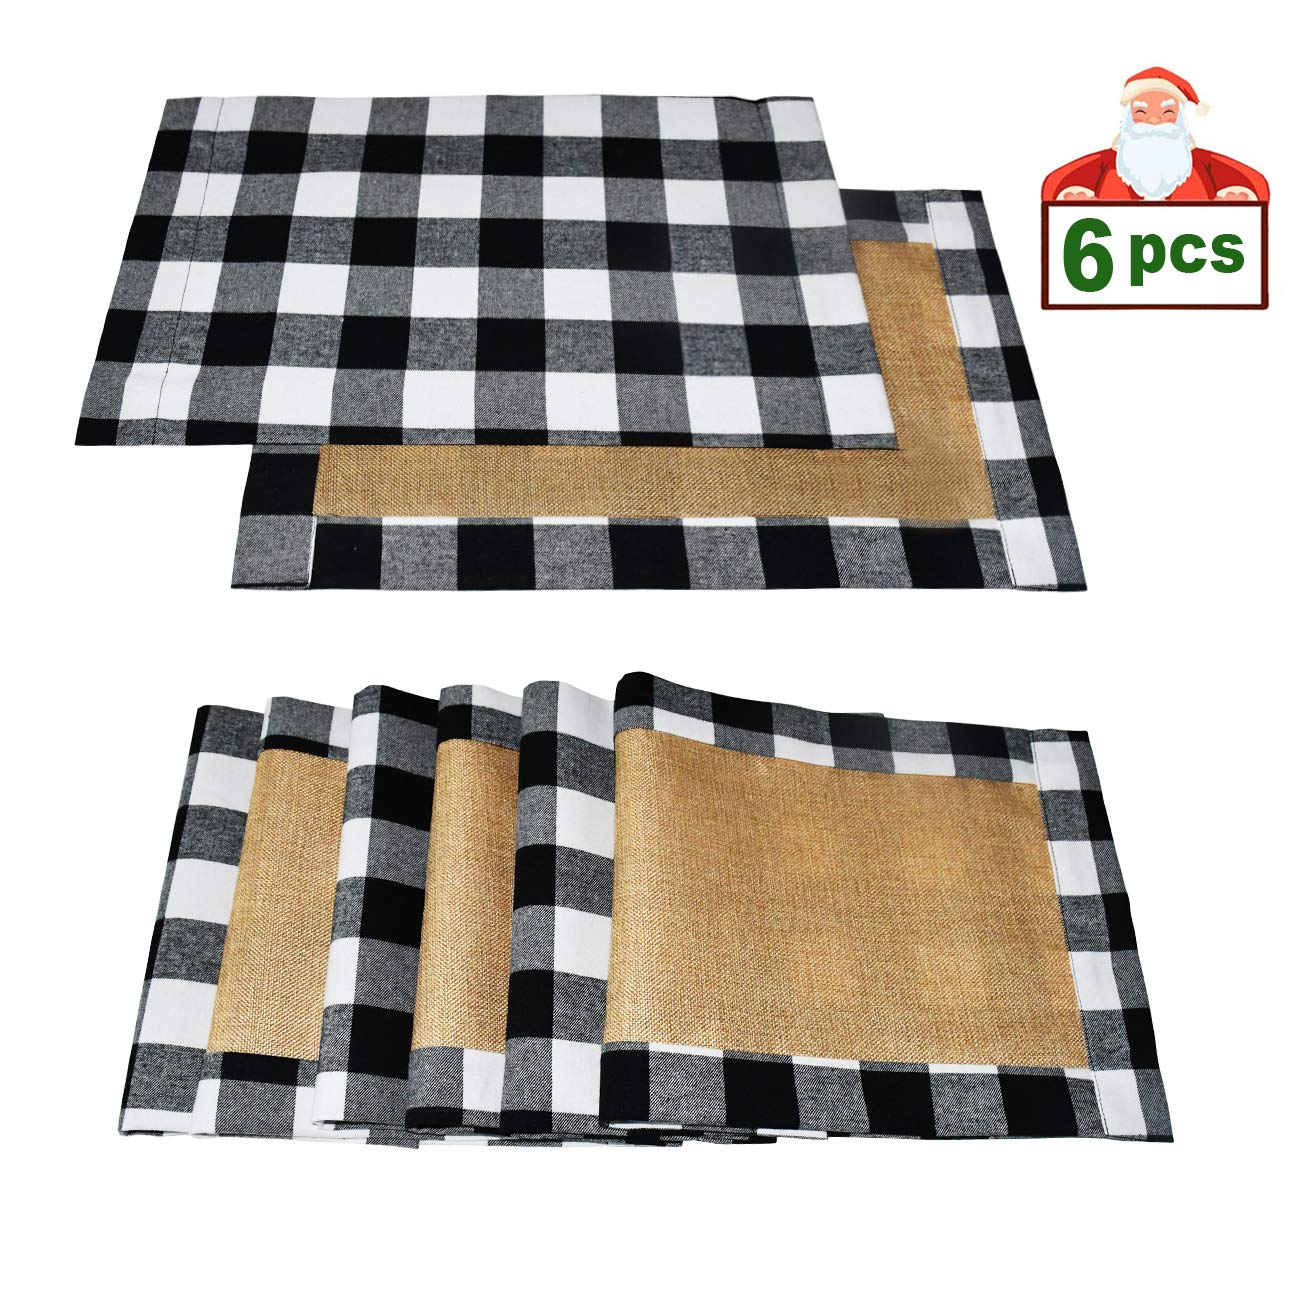 Senneny Set of 6 Christmas Placemats Buffalo Check Placemats Black White Plaid Reversible Burlap & Cotton Placemats for Christmas Holiday Table Home Decoration